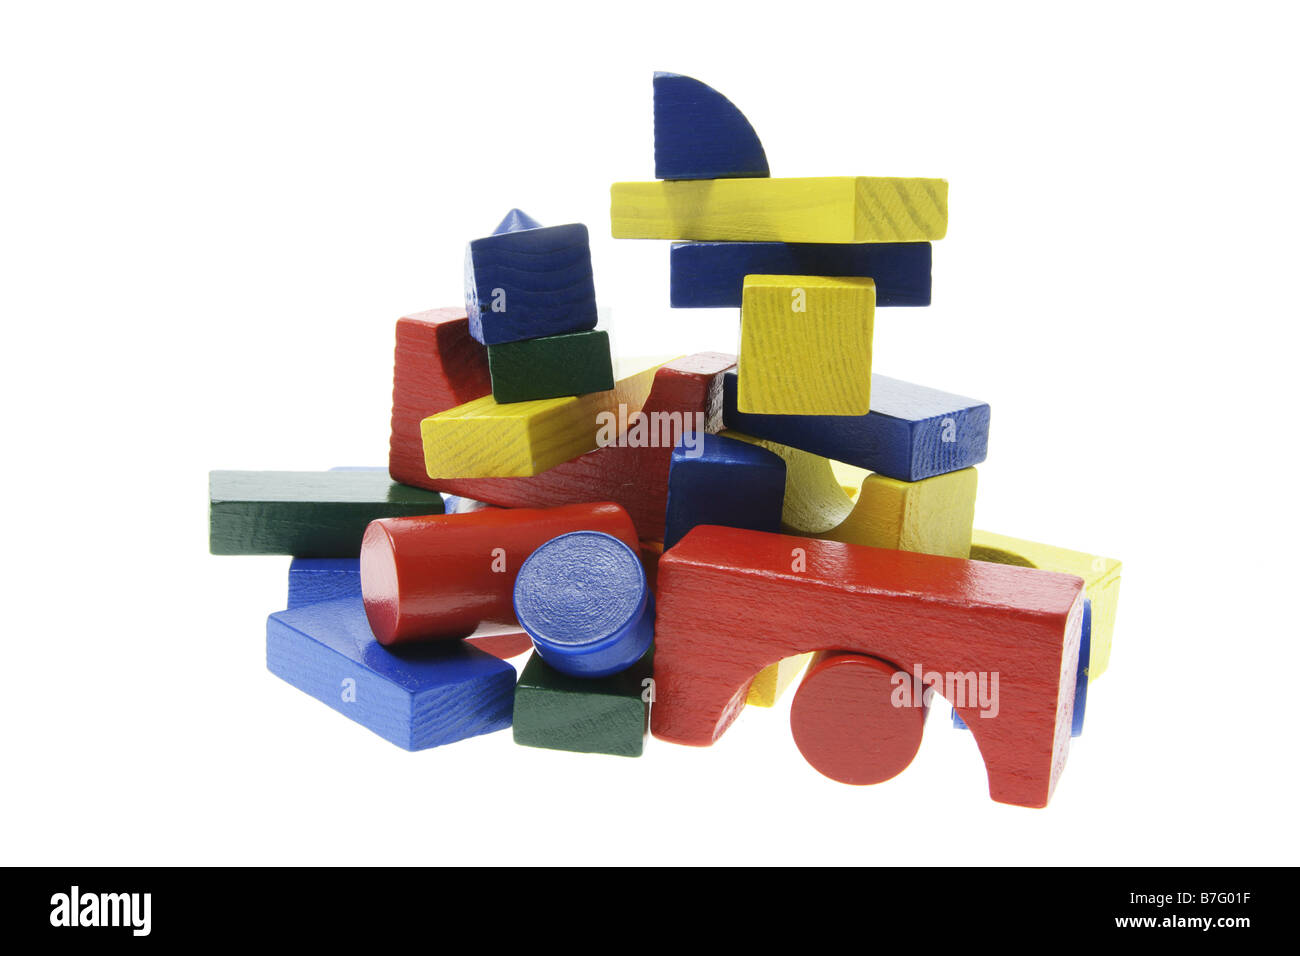 Stack of Wooden Building Blocks Stock Photo